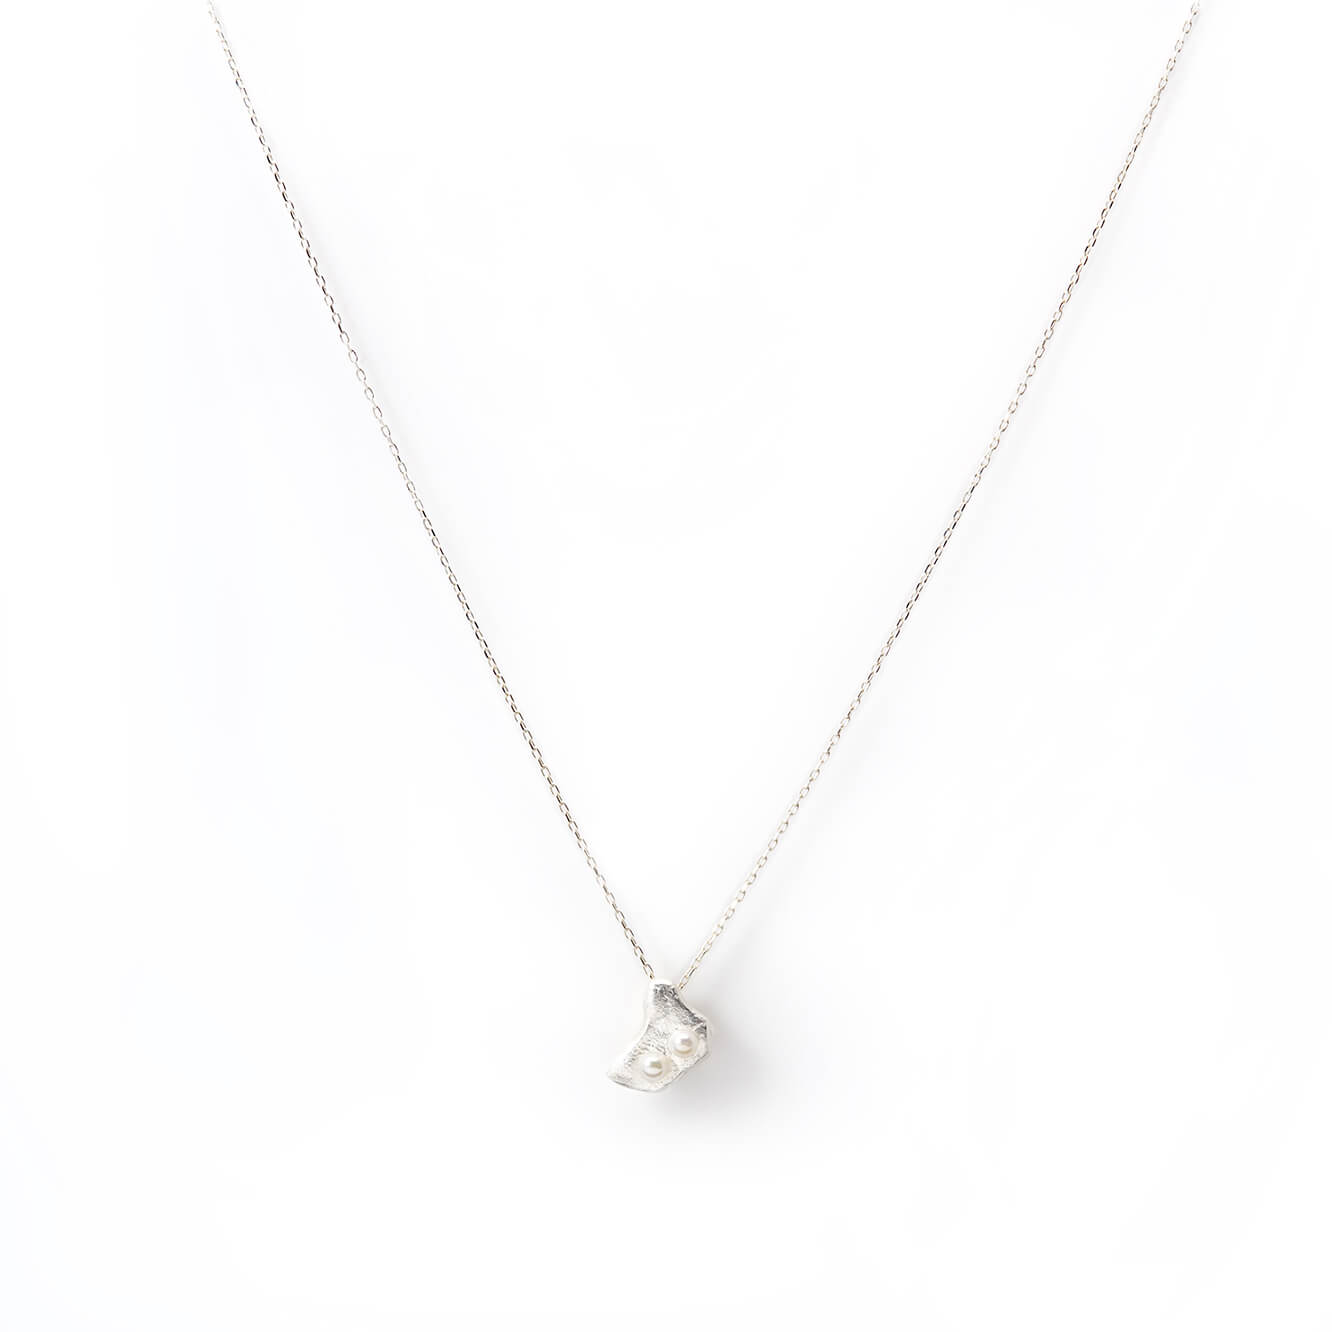 Perle Necklace in Sterling Silver